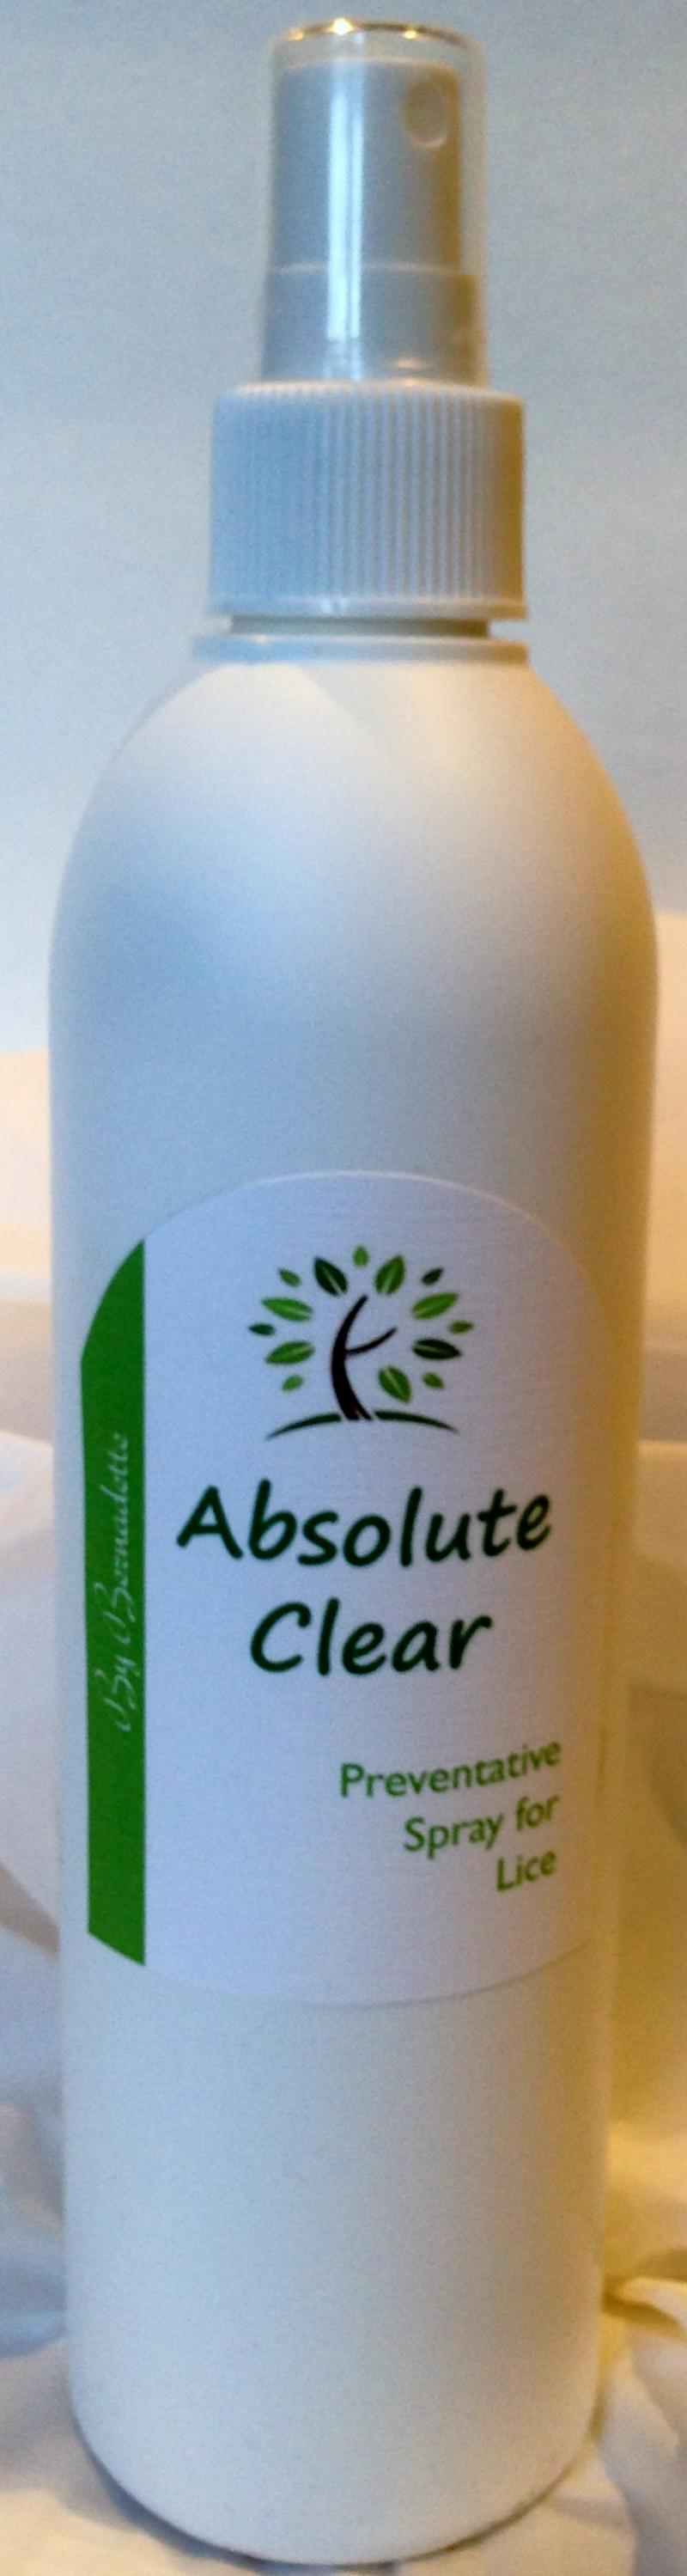 Absolute Clear - Preventative Spray